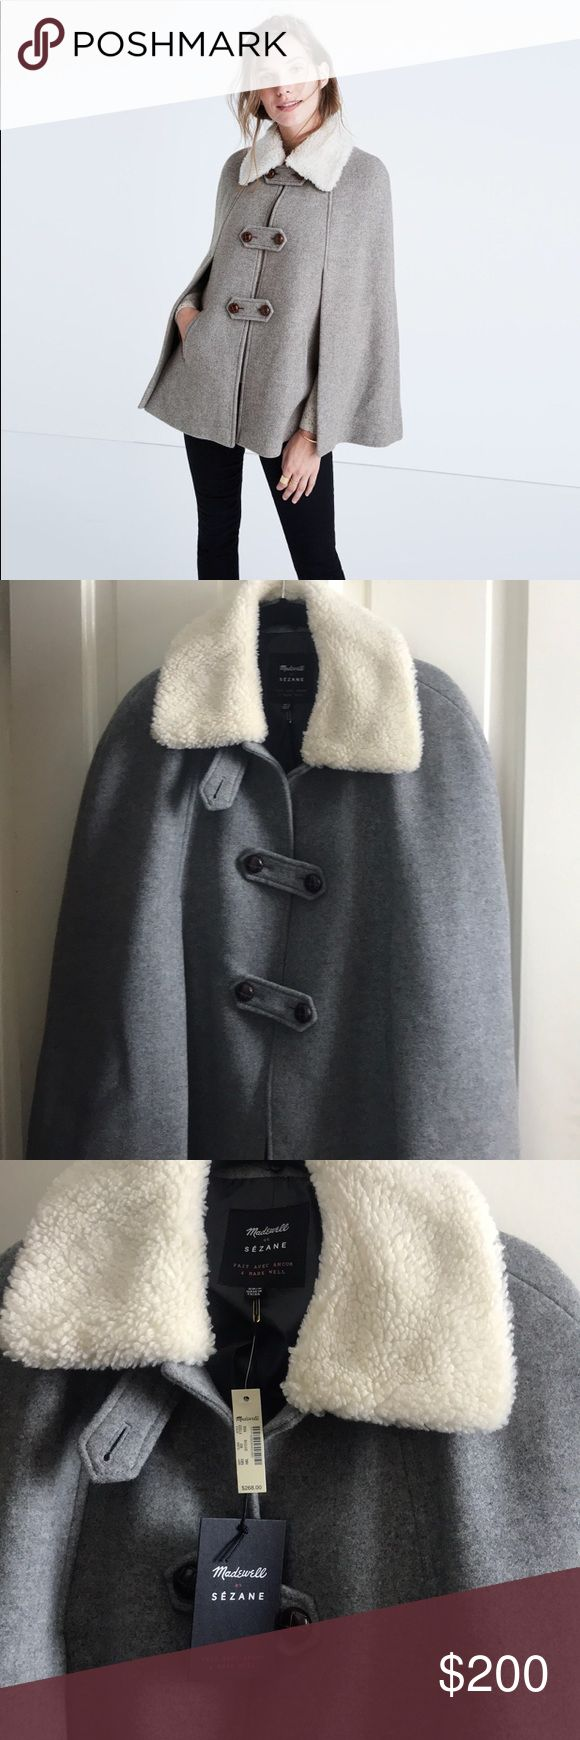 Madewell x Sezane Igor cape FLASH SALE Removable Sherpa collar. Never worn with tags. The pockets are still sewn shut. I live in LA+global warming so I've never gotten a chance to wear this. Sezane Jackets & Coats Capes